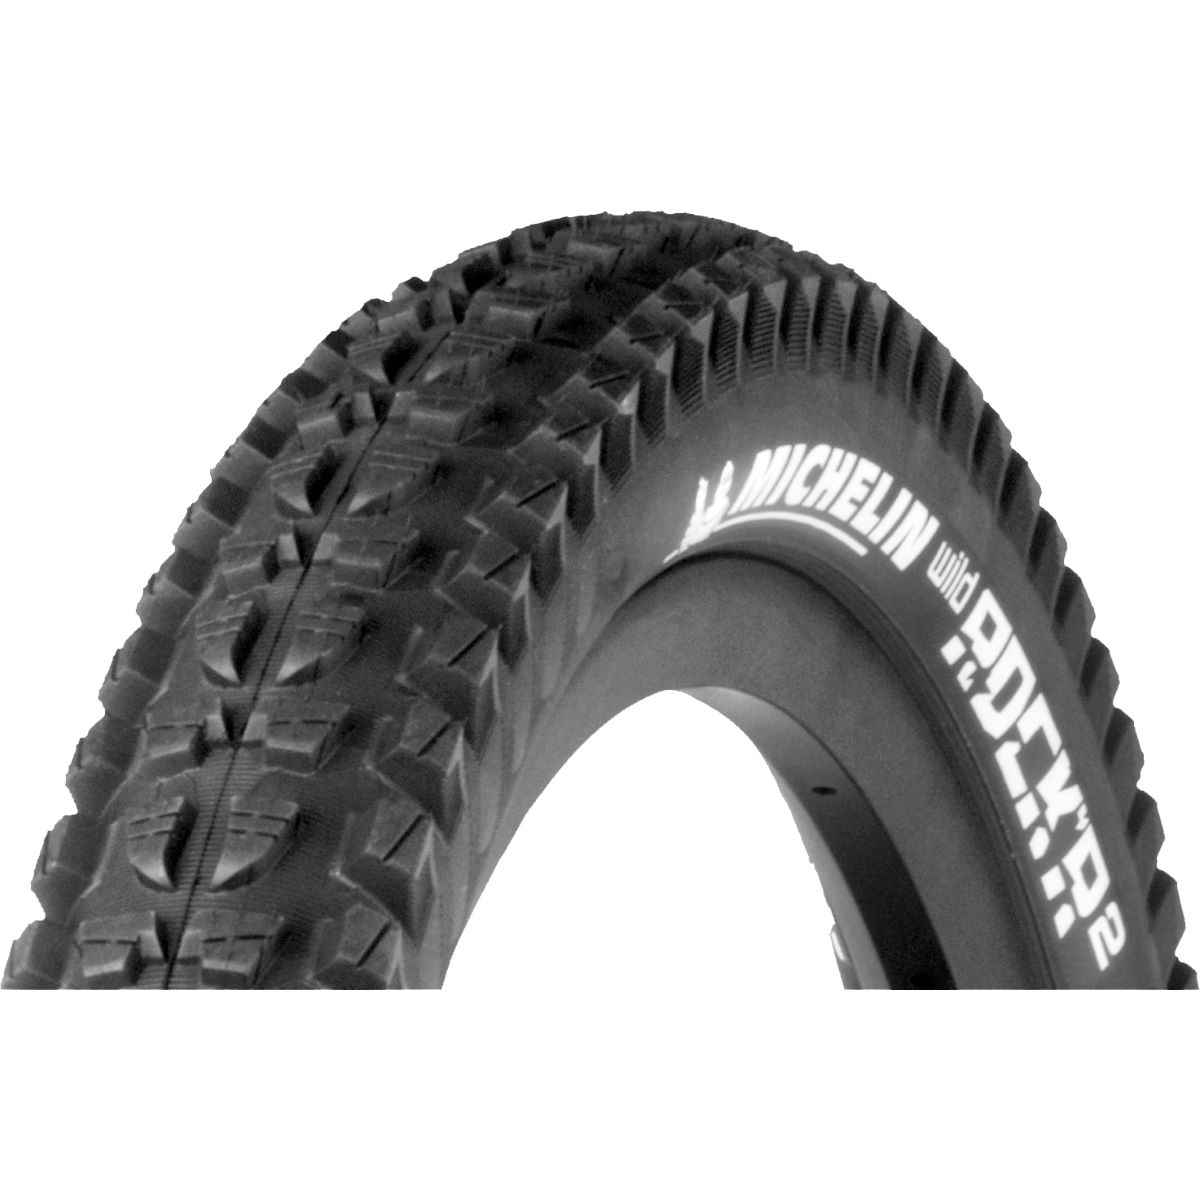 Pneu Michelin Wild Rock'r2 Advanced Reinforced Magi-X 27,5 pouces - 27.5 x 2.35 Noir Pneus VTT